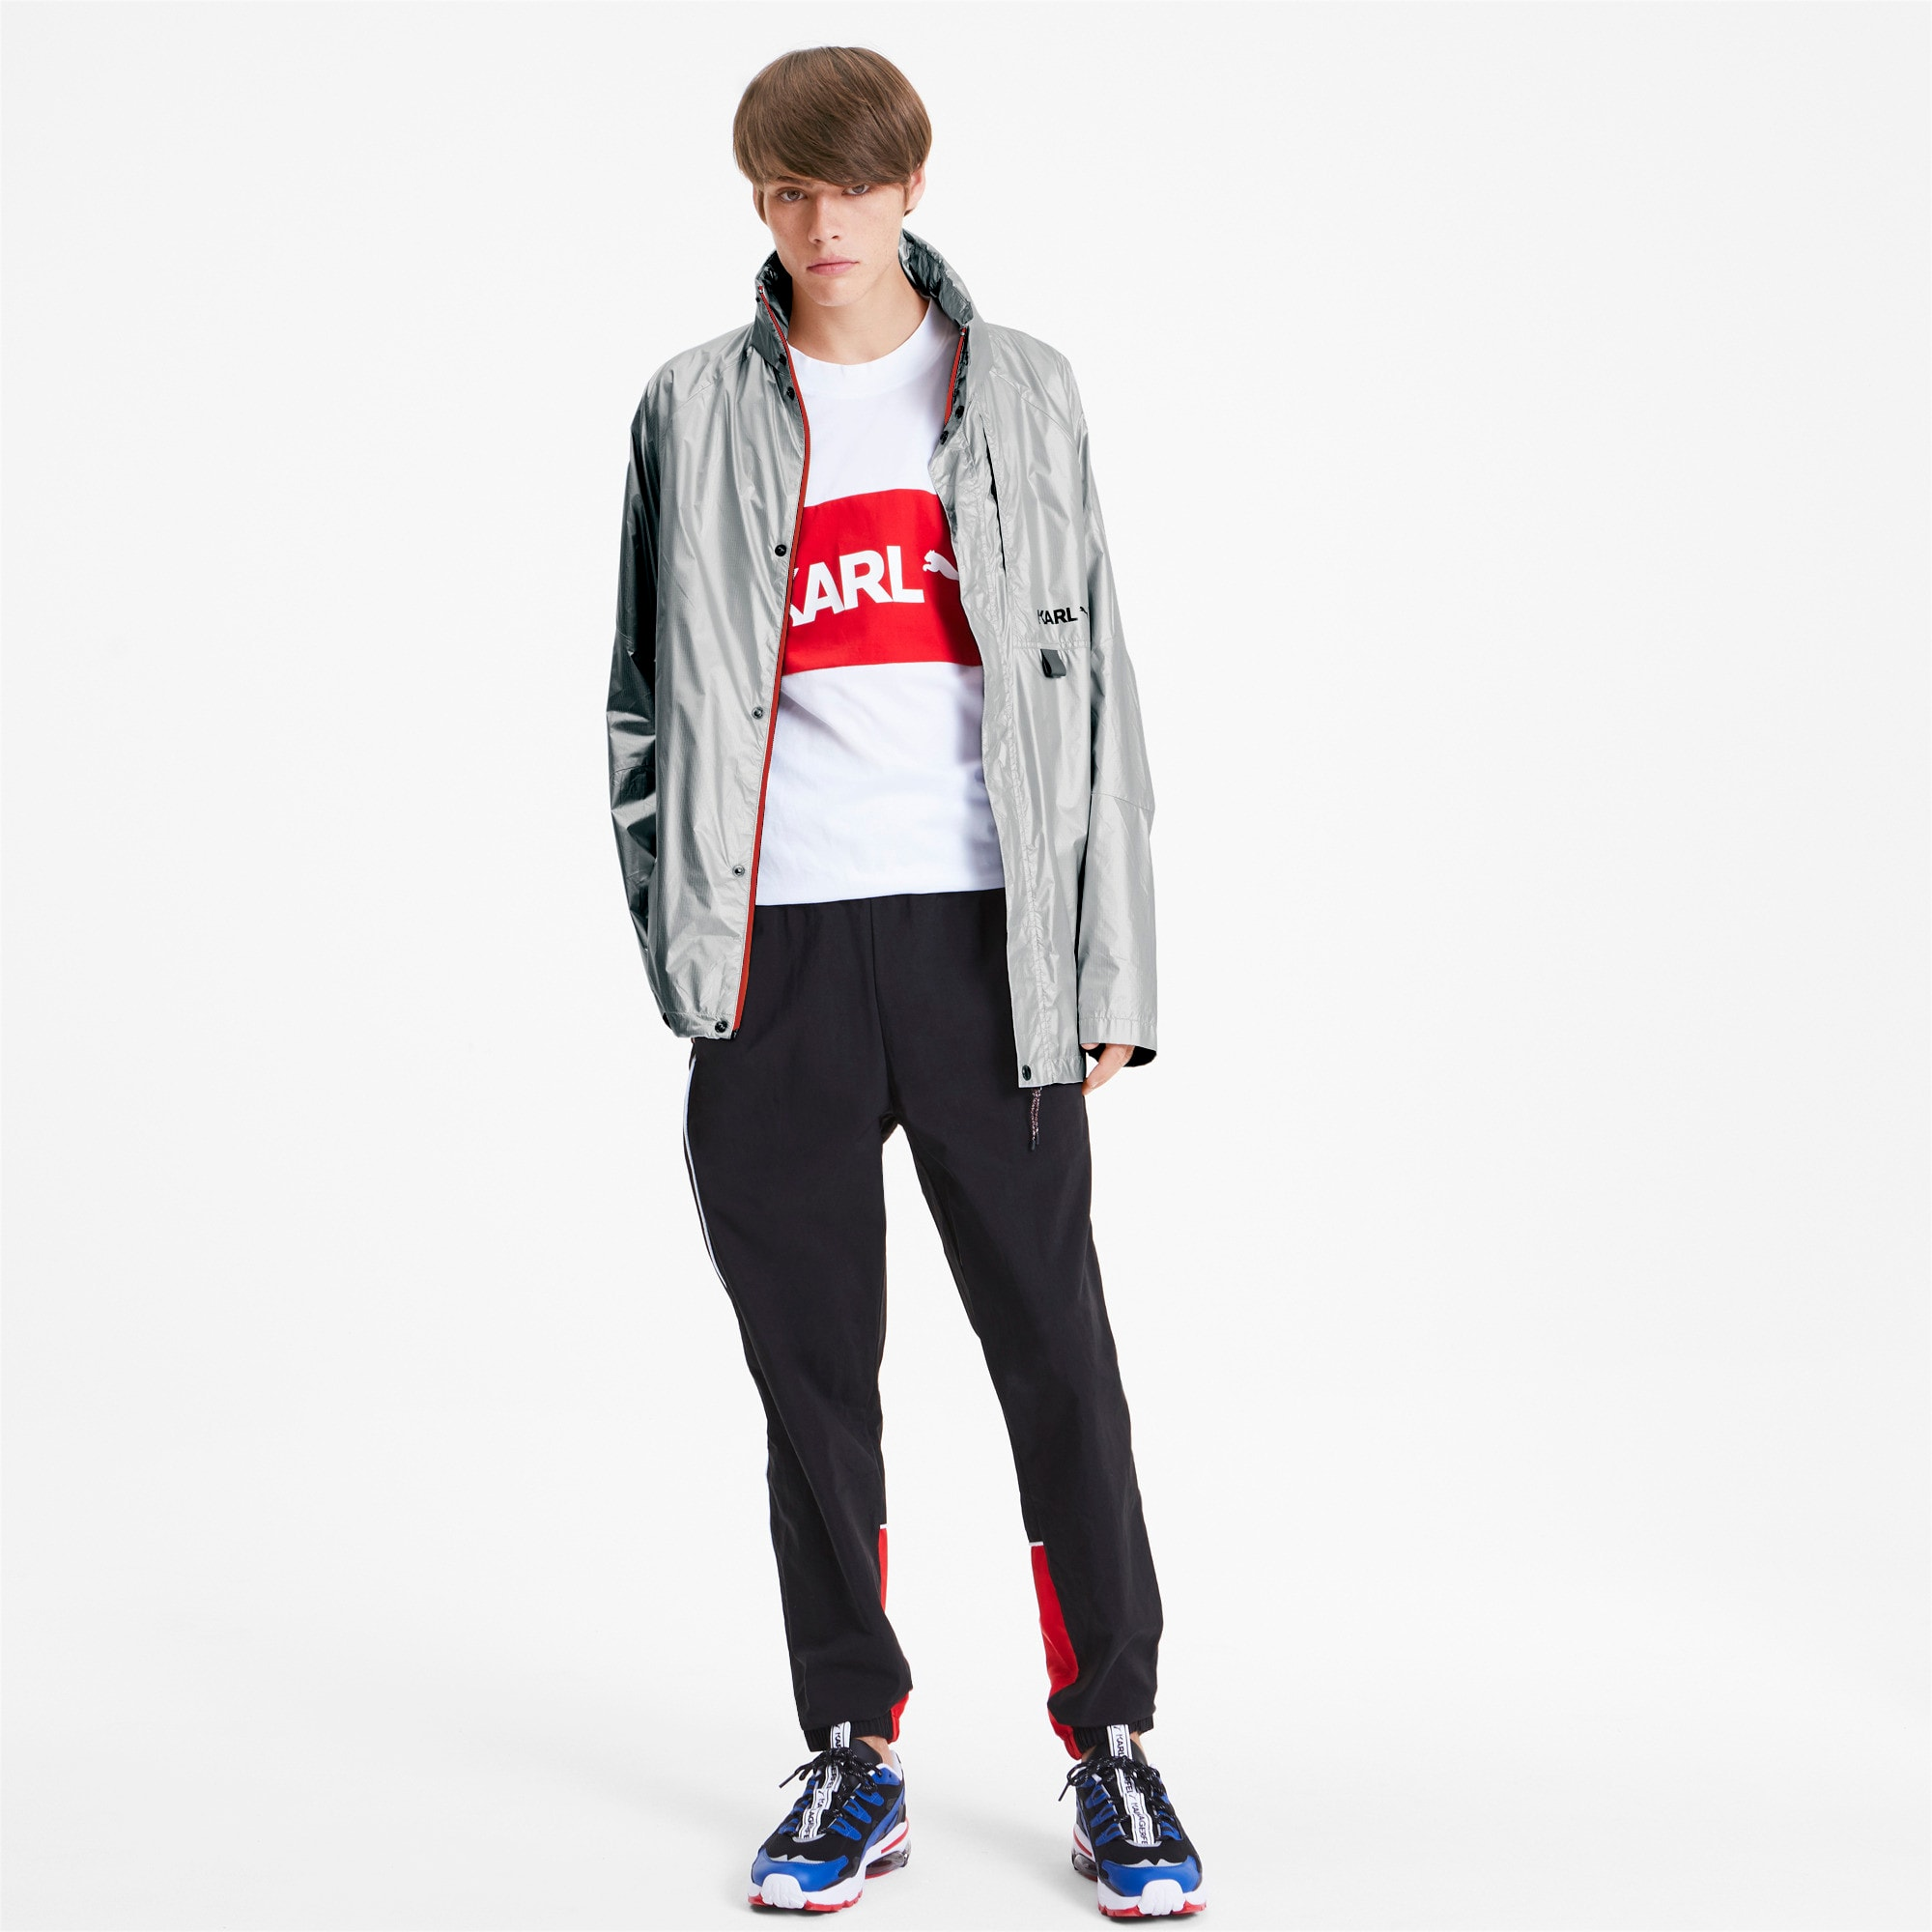 Thumbnail 3 of PUMA x KARL LAGERFELD Men's Jacket, Puma Black, medium